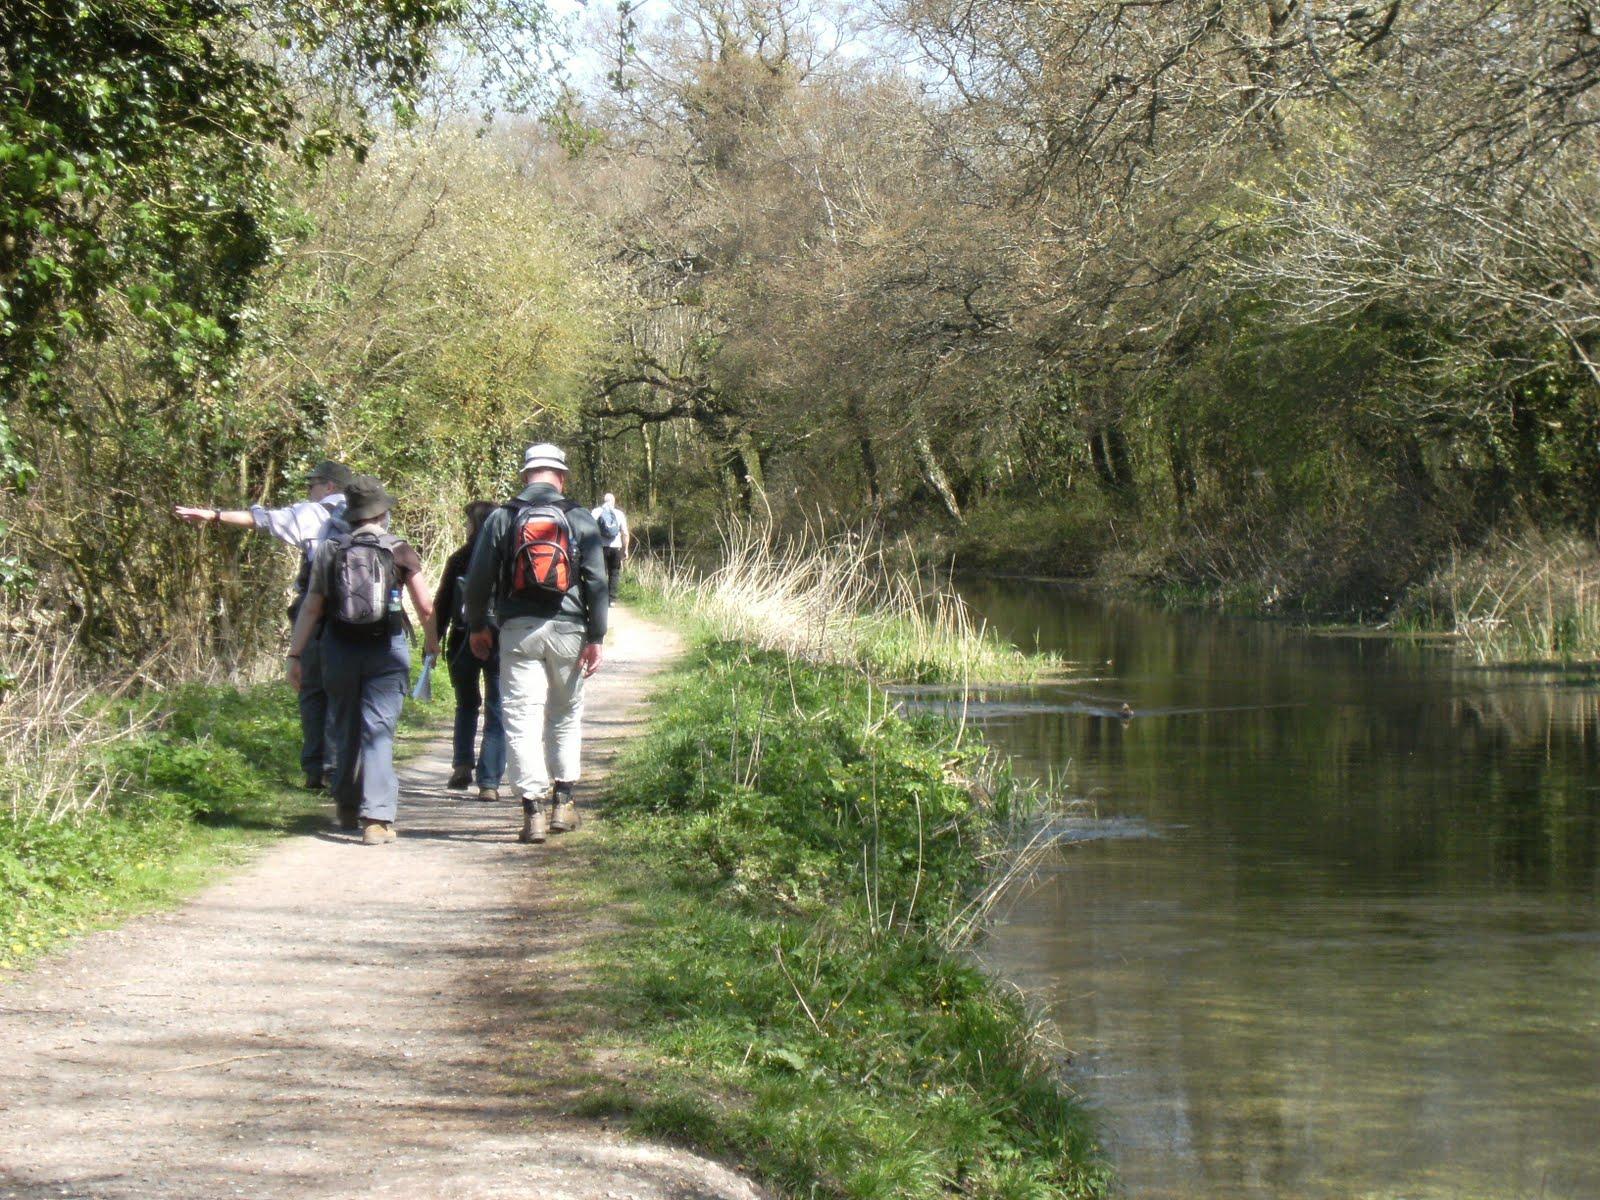 1004170010 Along the Basingstoke Canal